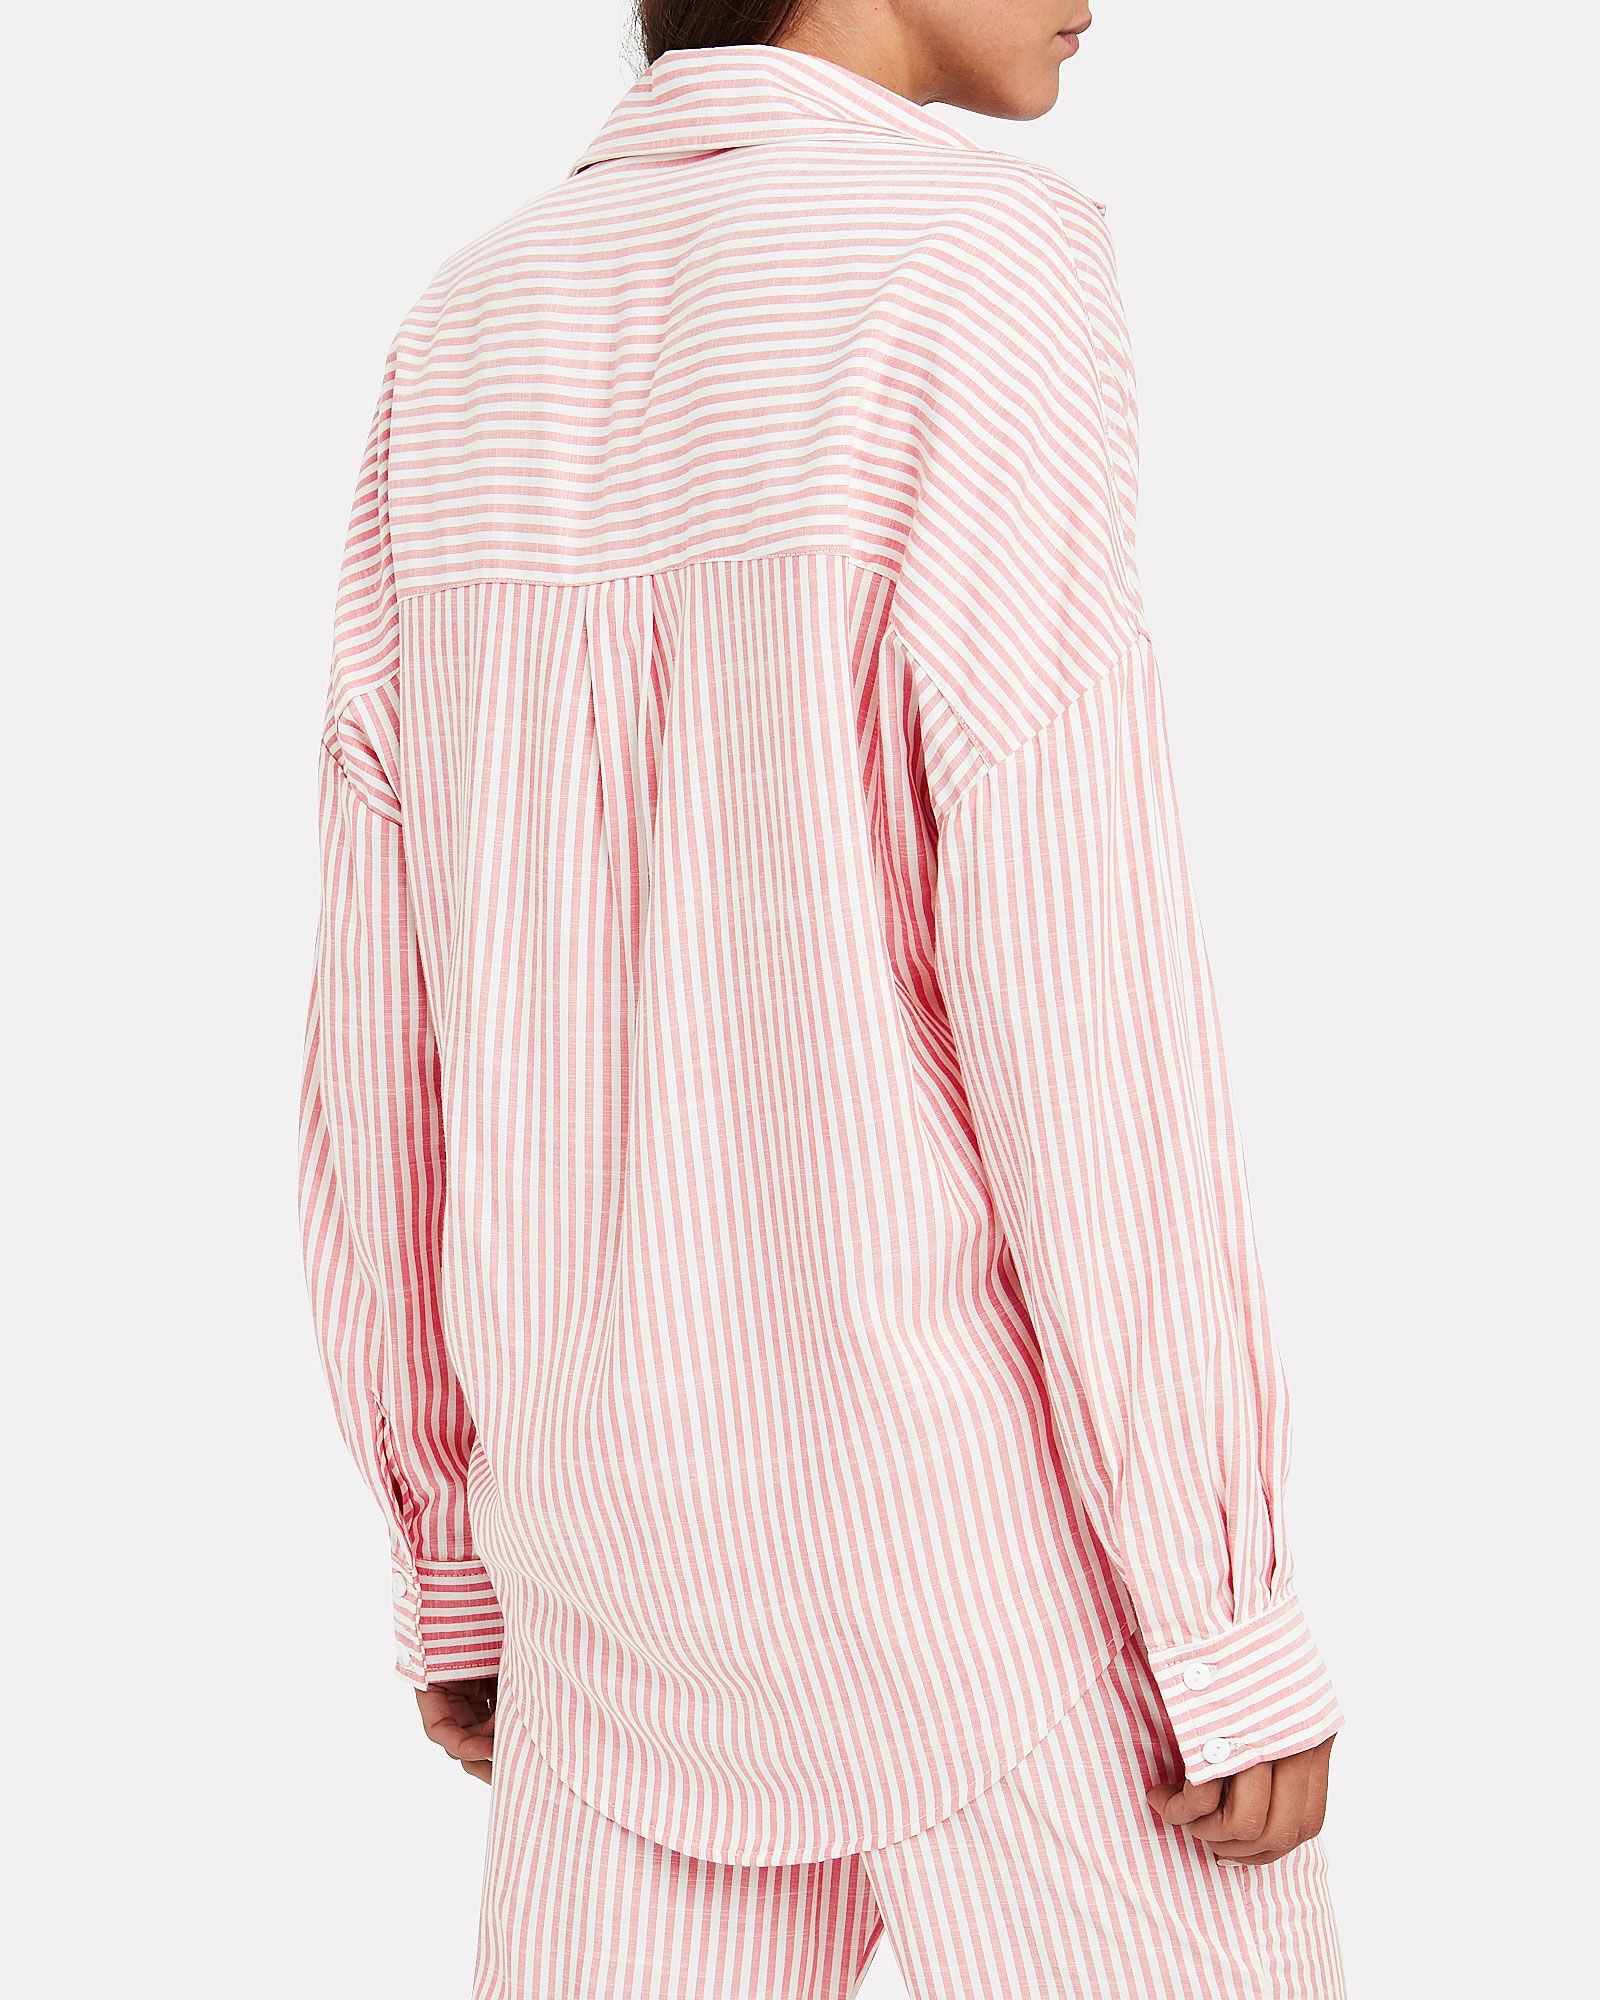 Kye Striped Button Front Shirt, MULTI, hi-res